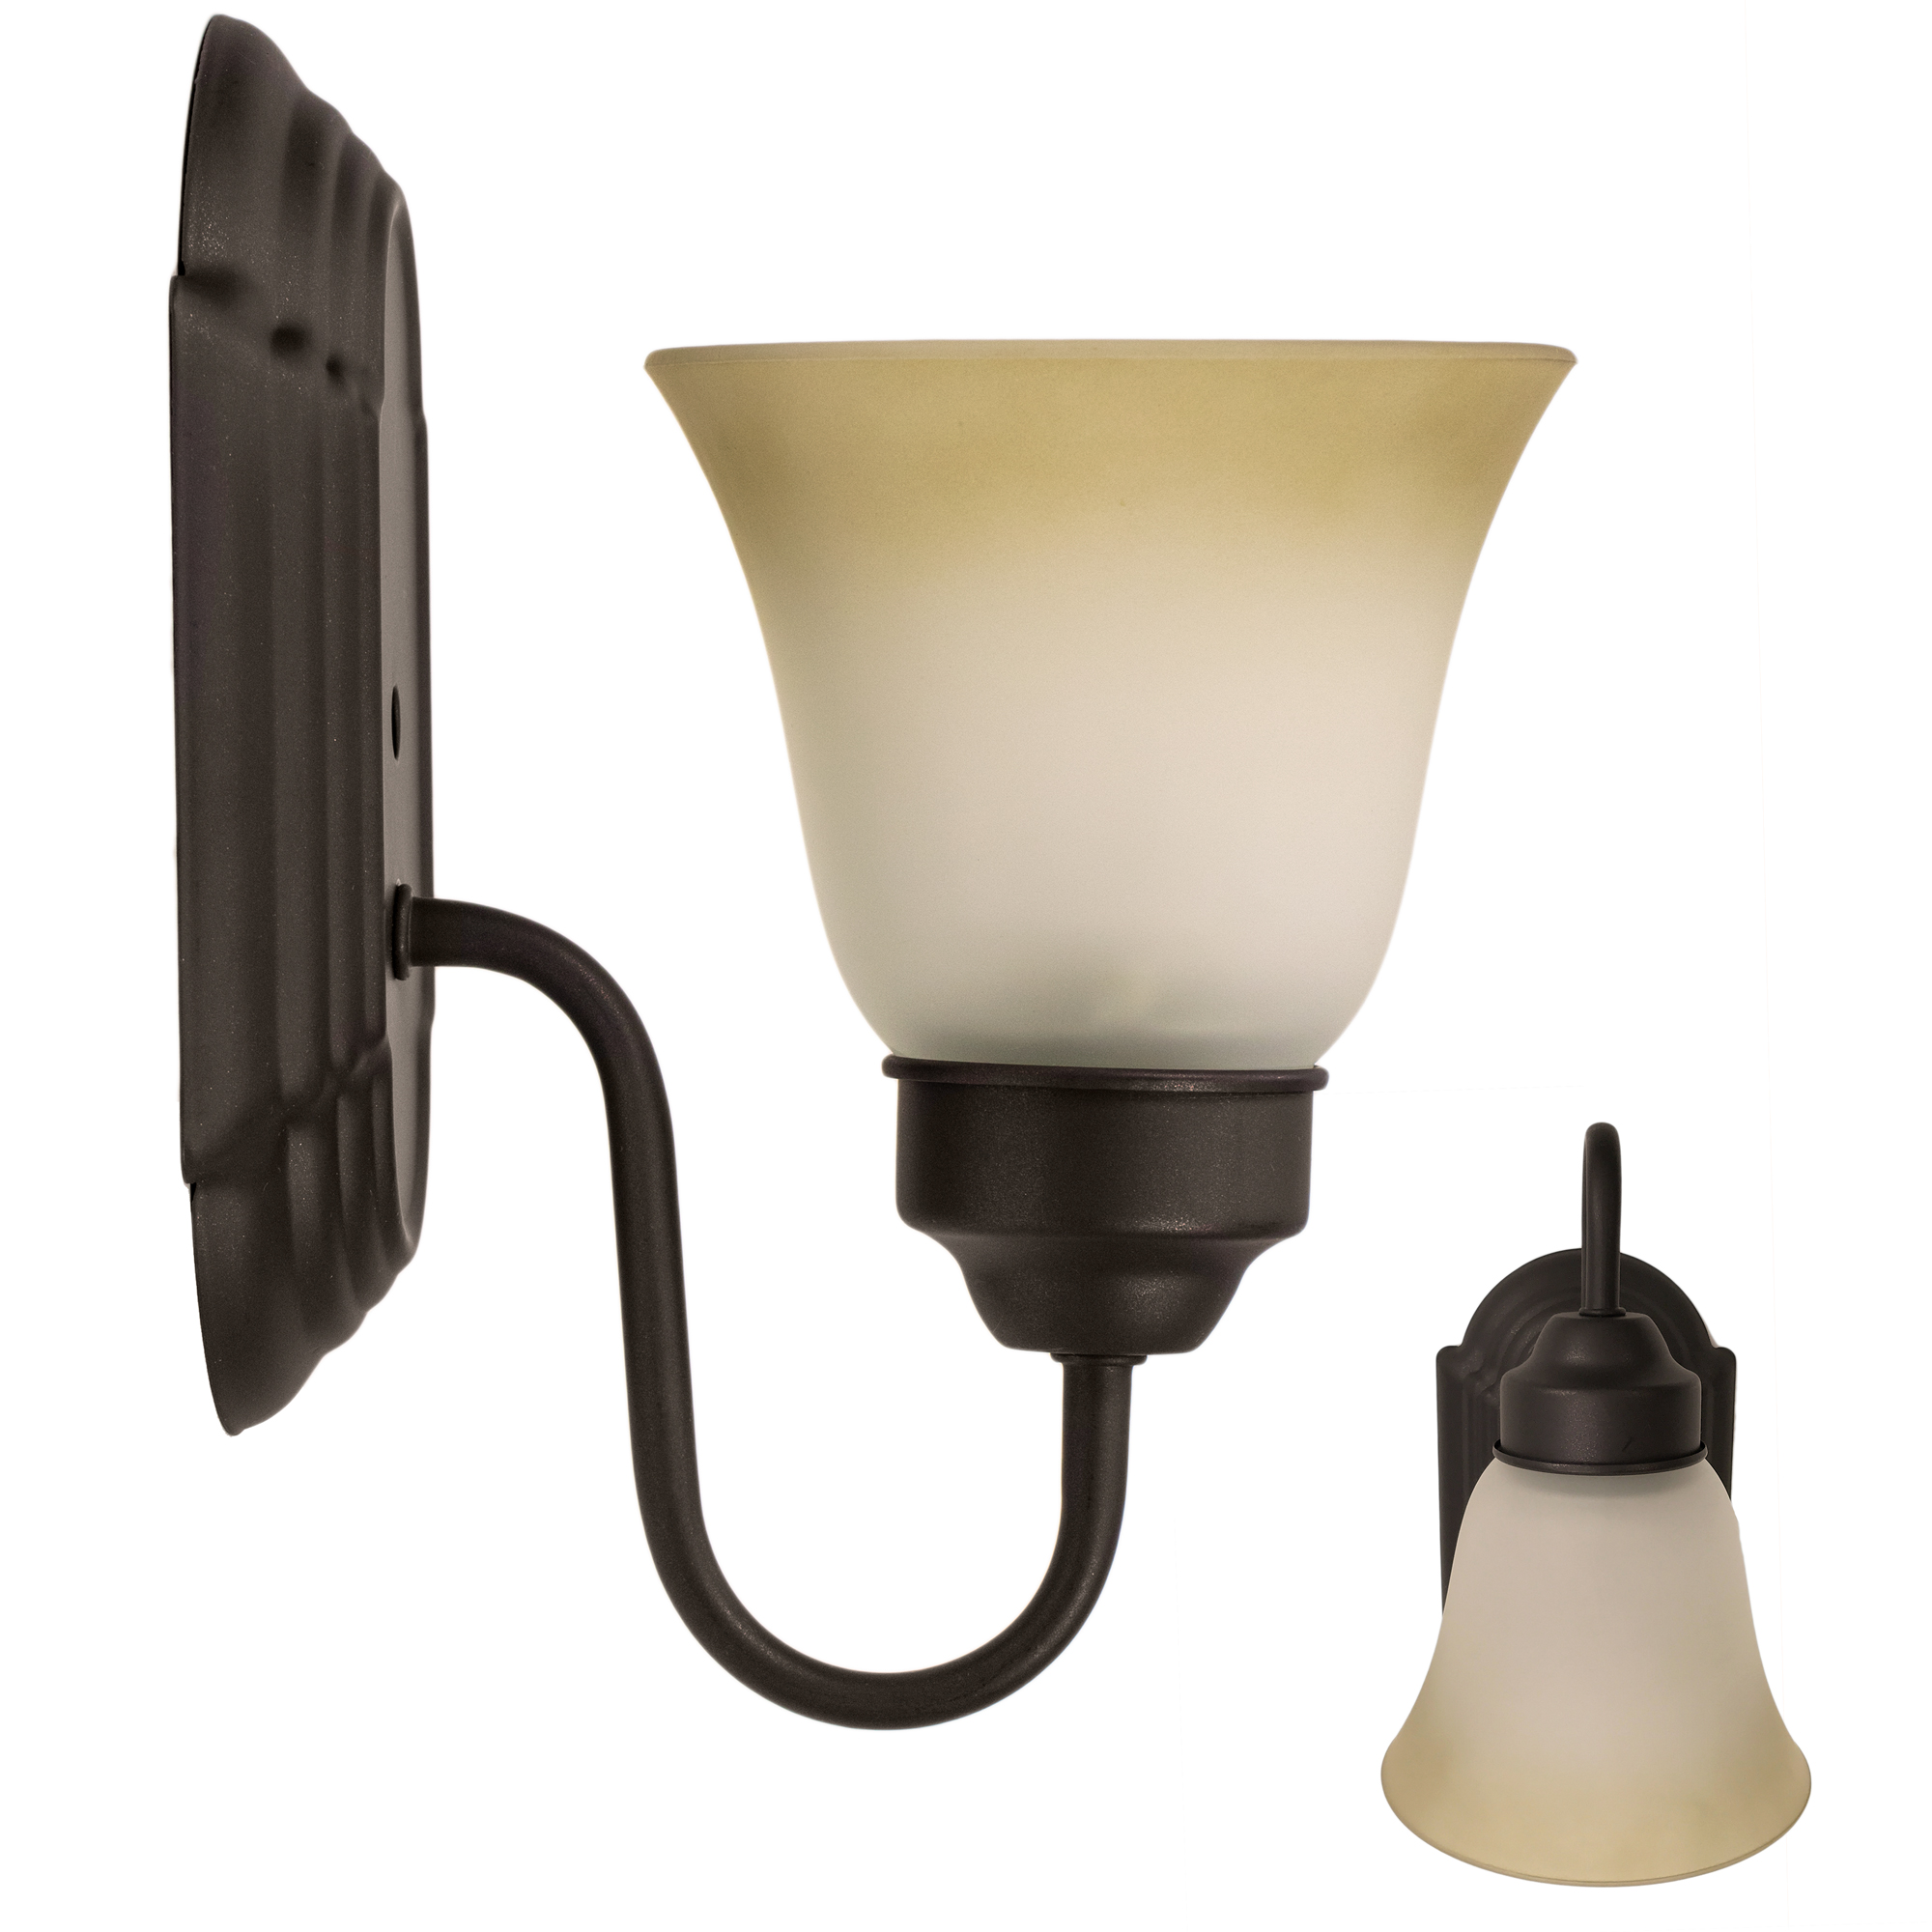 Click here to buy Bennington Luna Wall Sconce Light Fixture Single Light Vanity, Oil Rubbed Bronze.